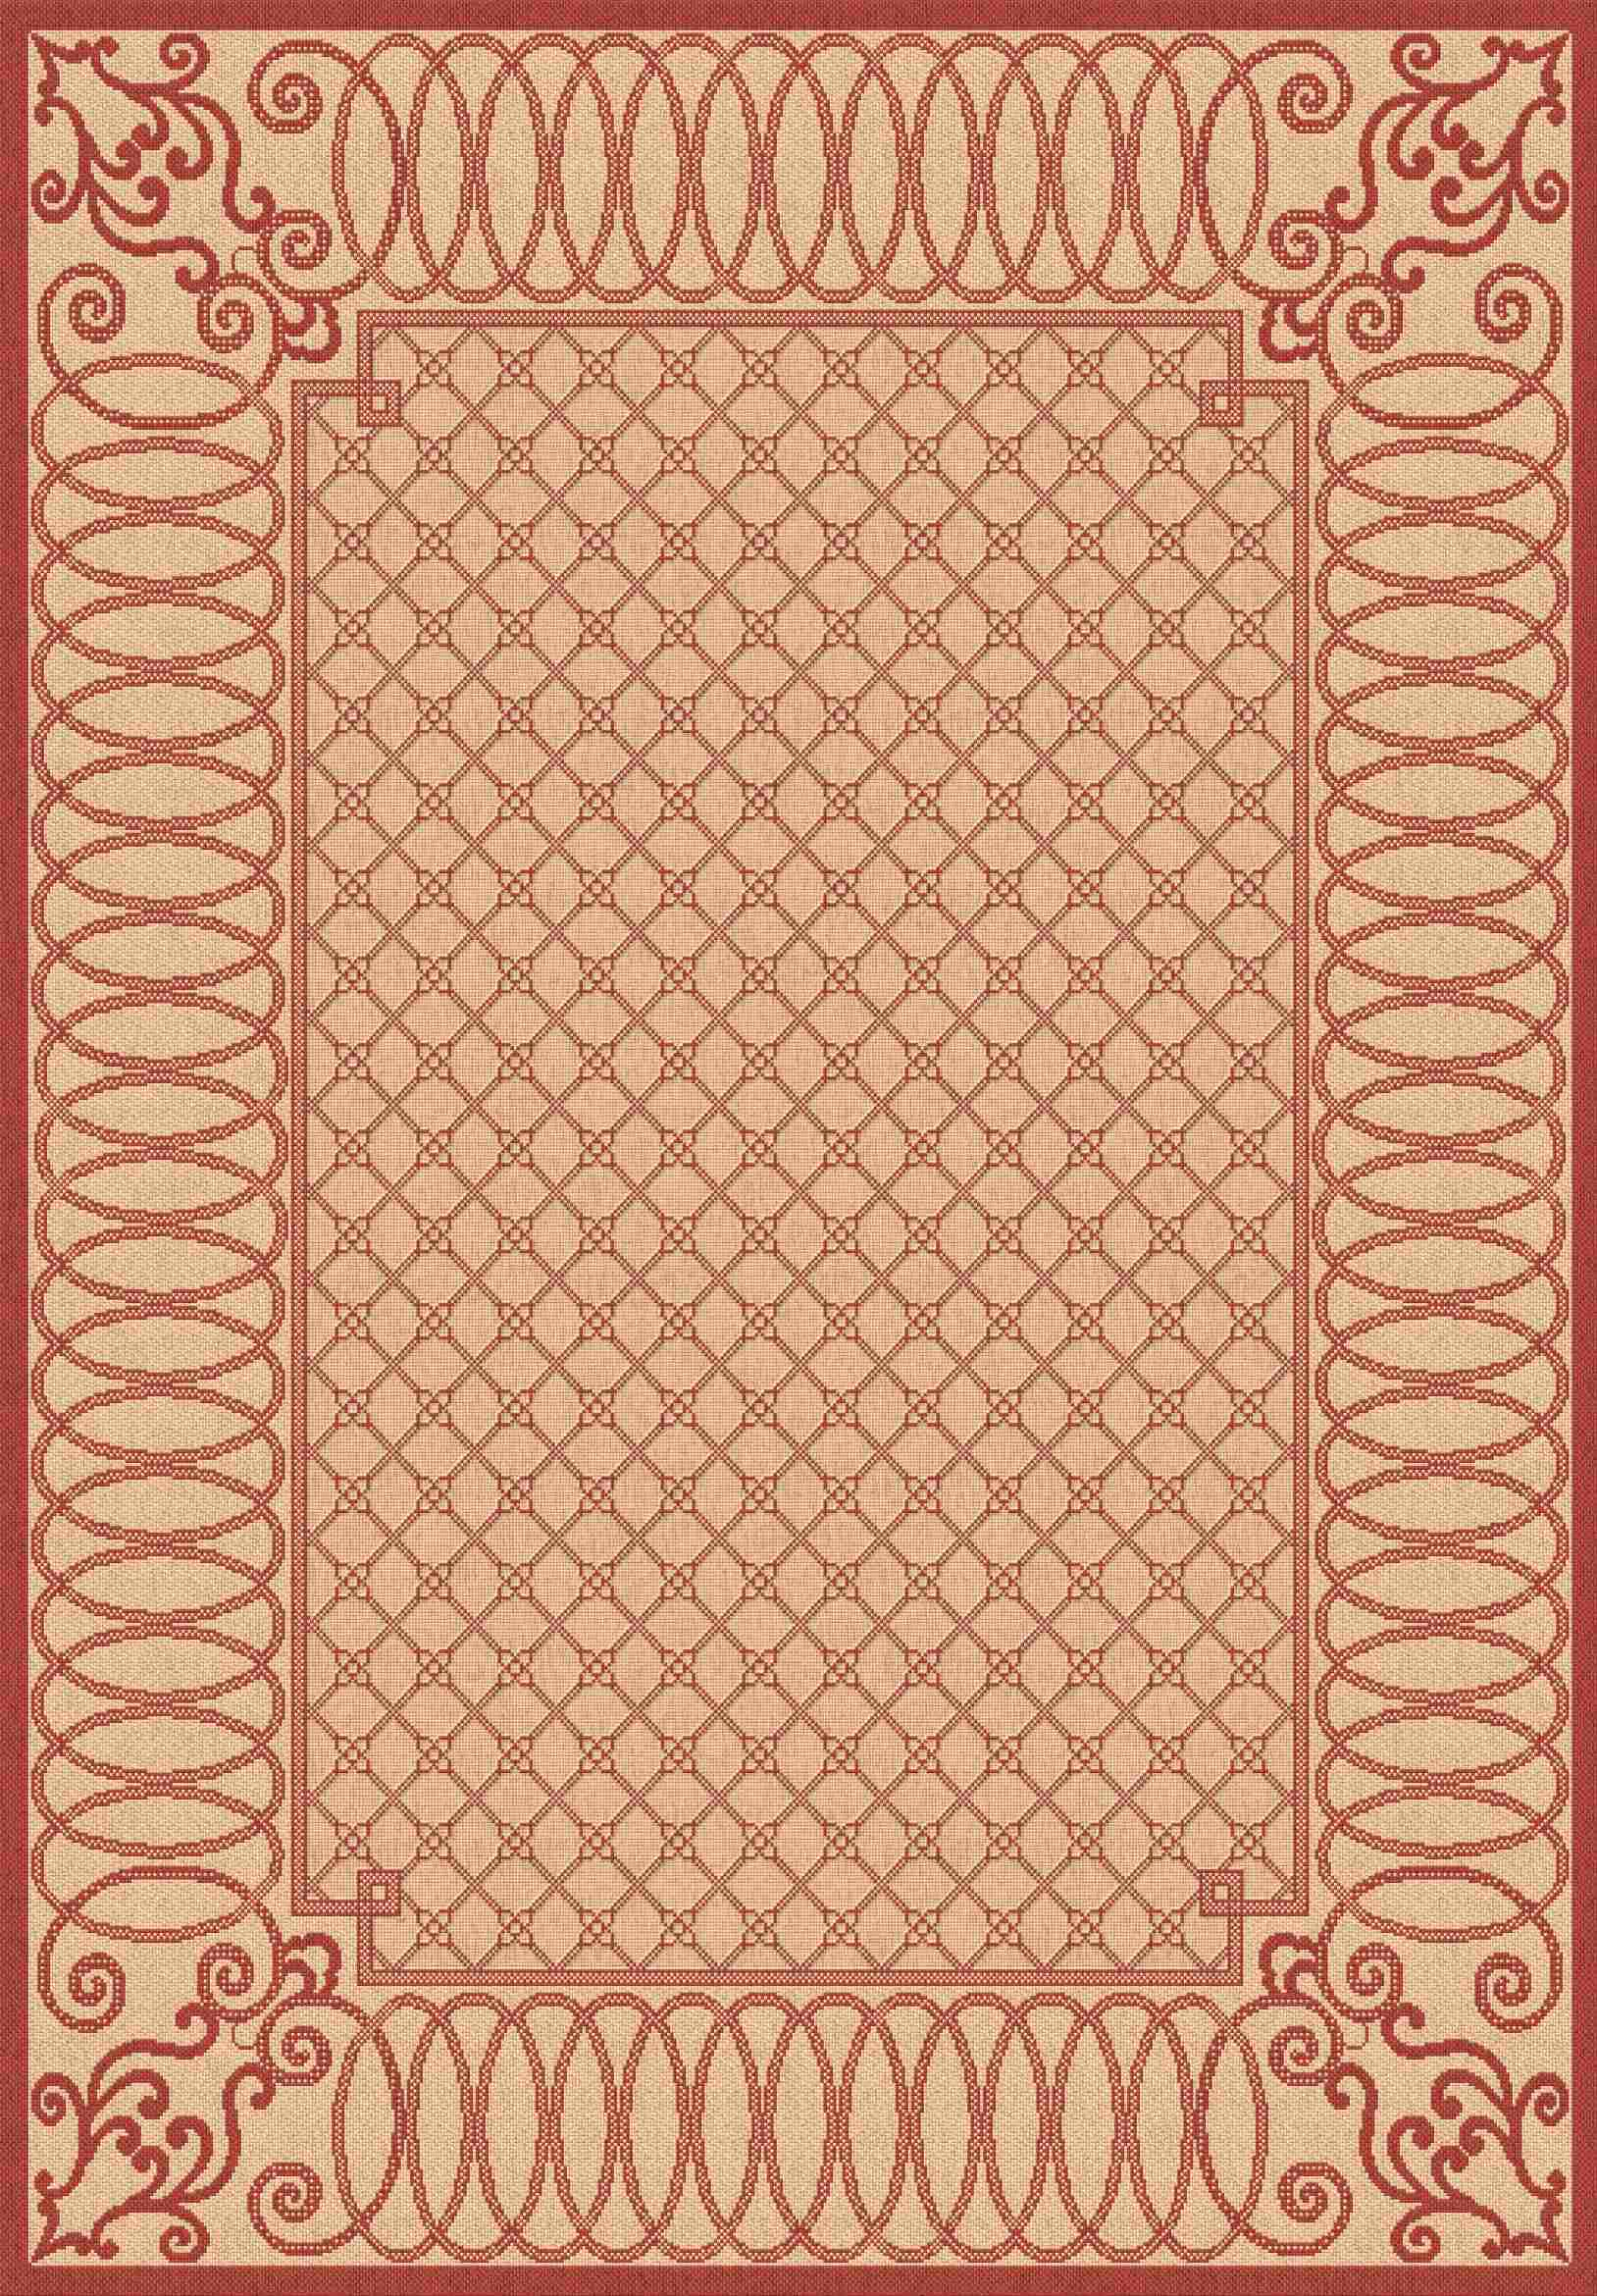 Dynamic Rugs Piazza Medallion/damask Beige/red 2587 Area Rug